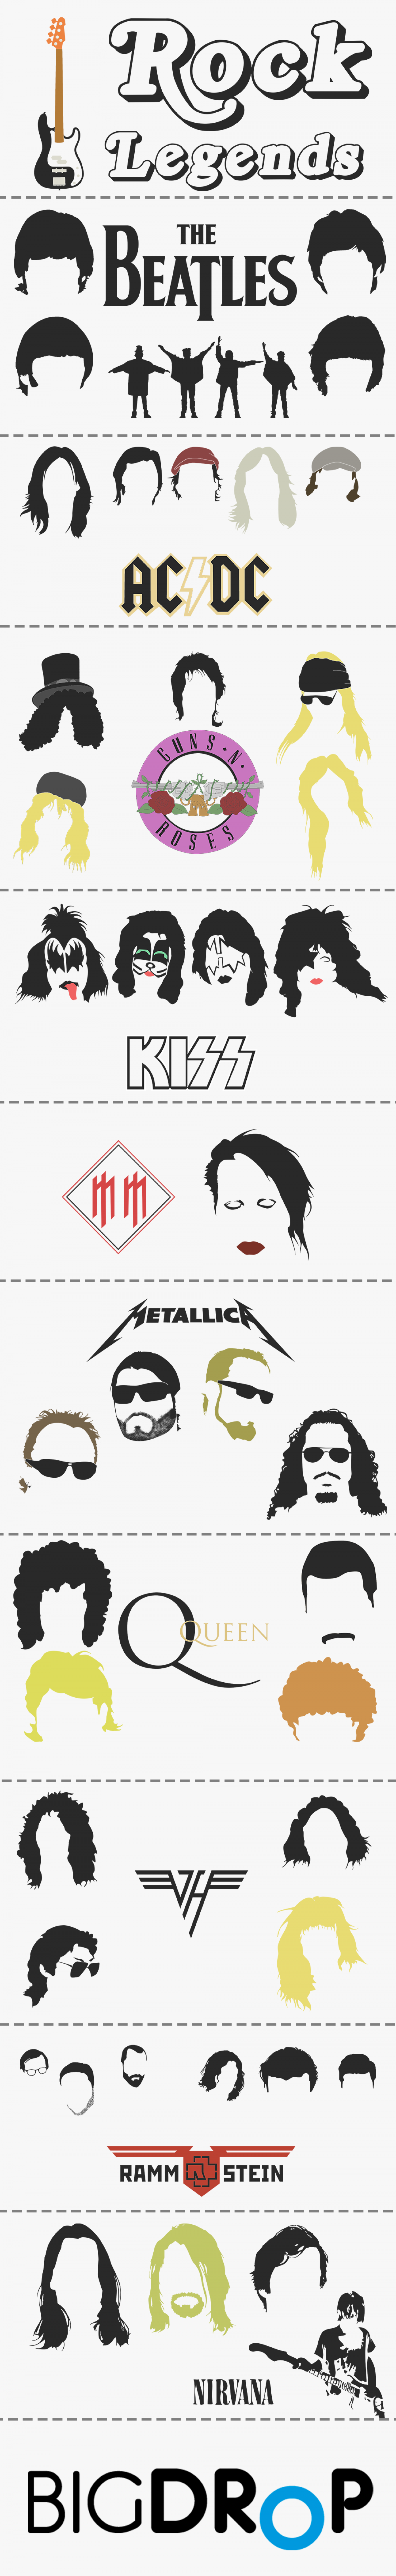 Rock Legends Infographic